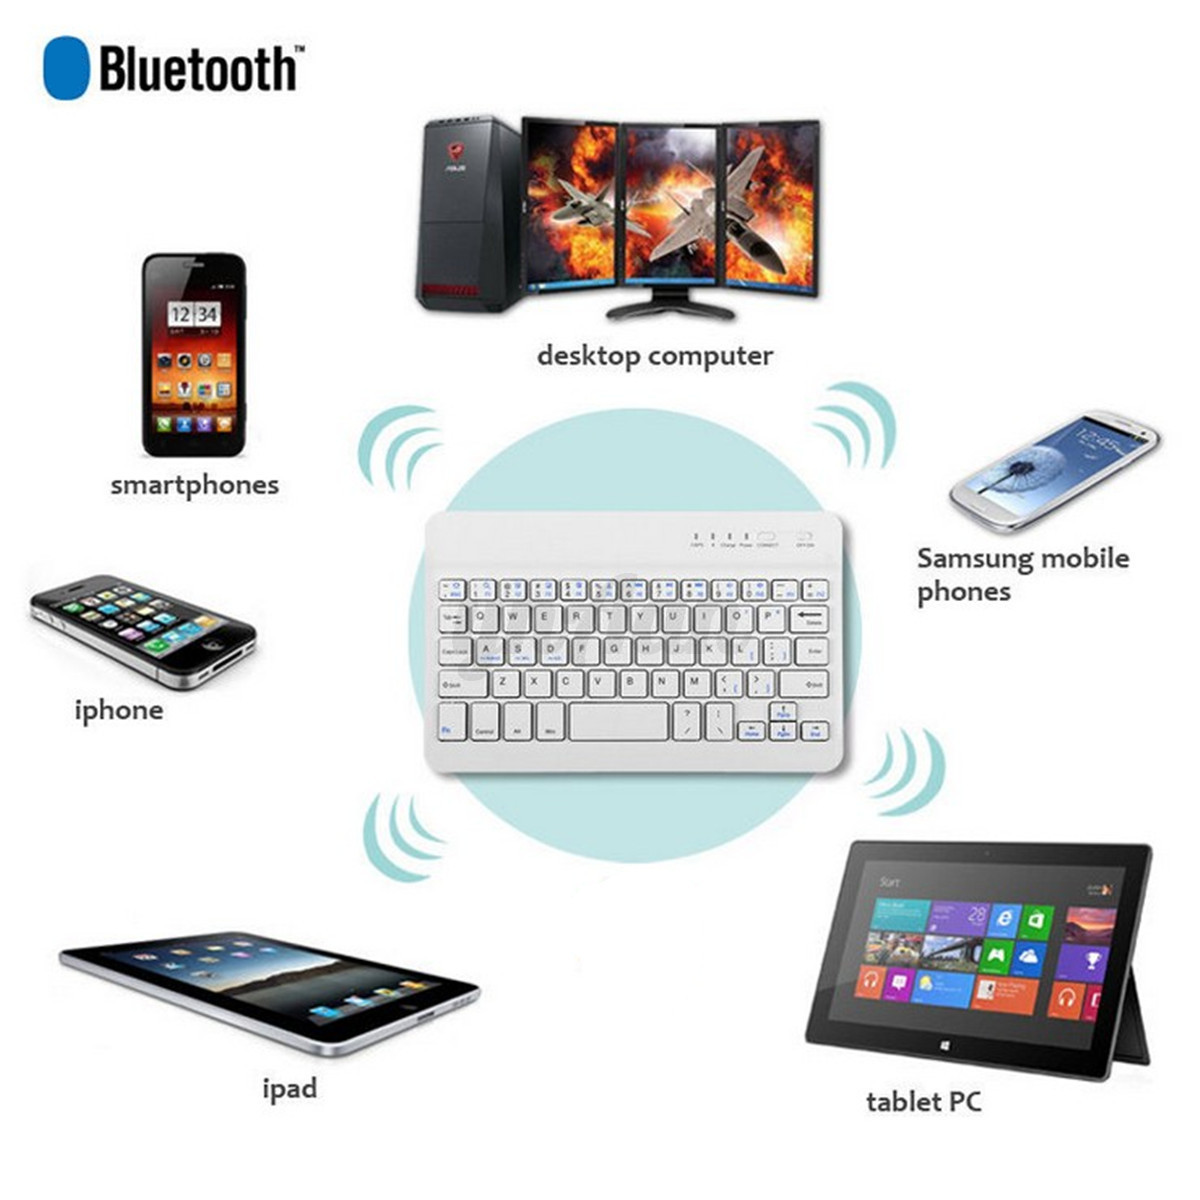 how to connect bluetooth macbook to iphone